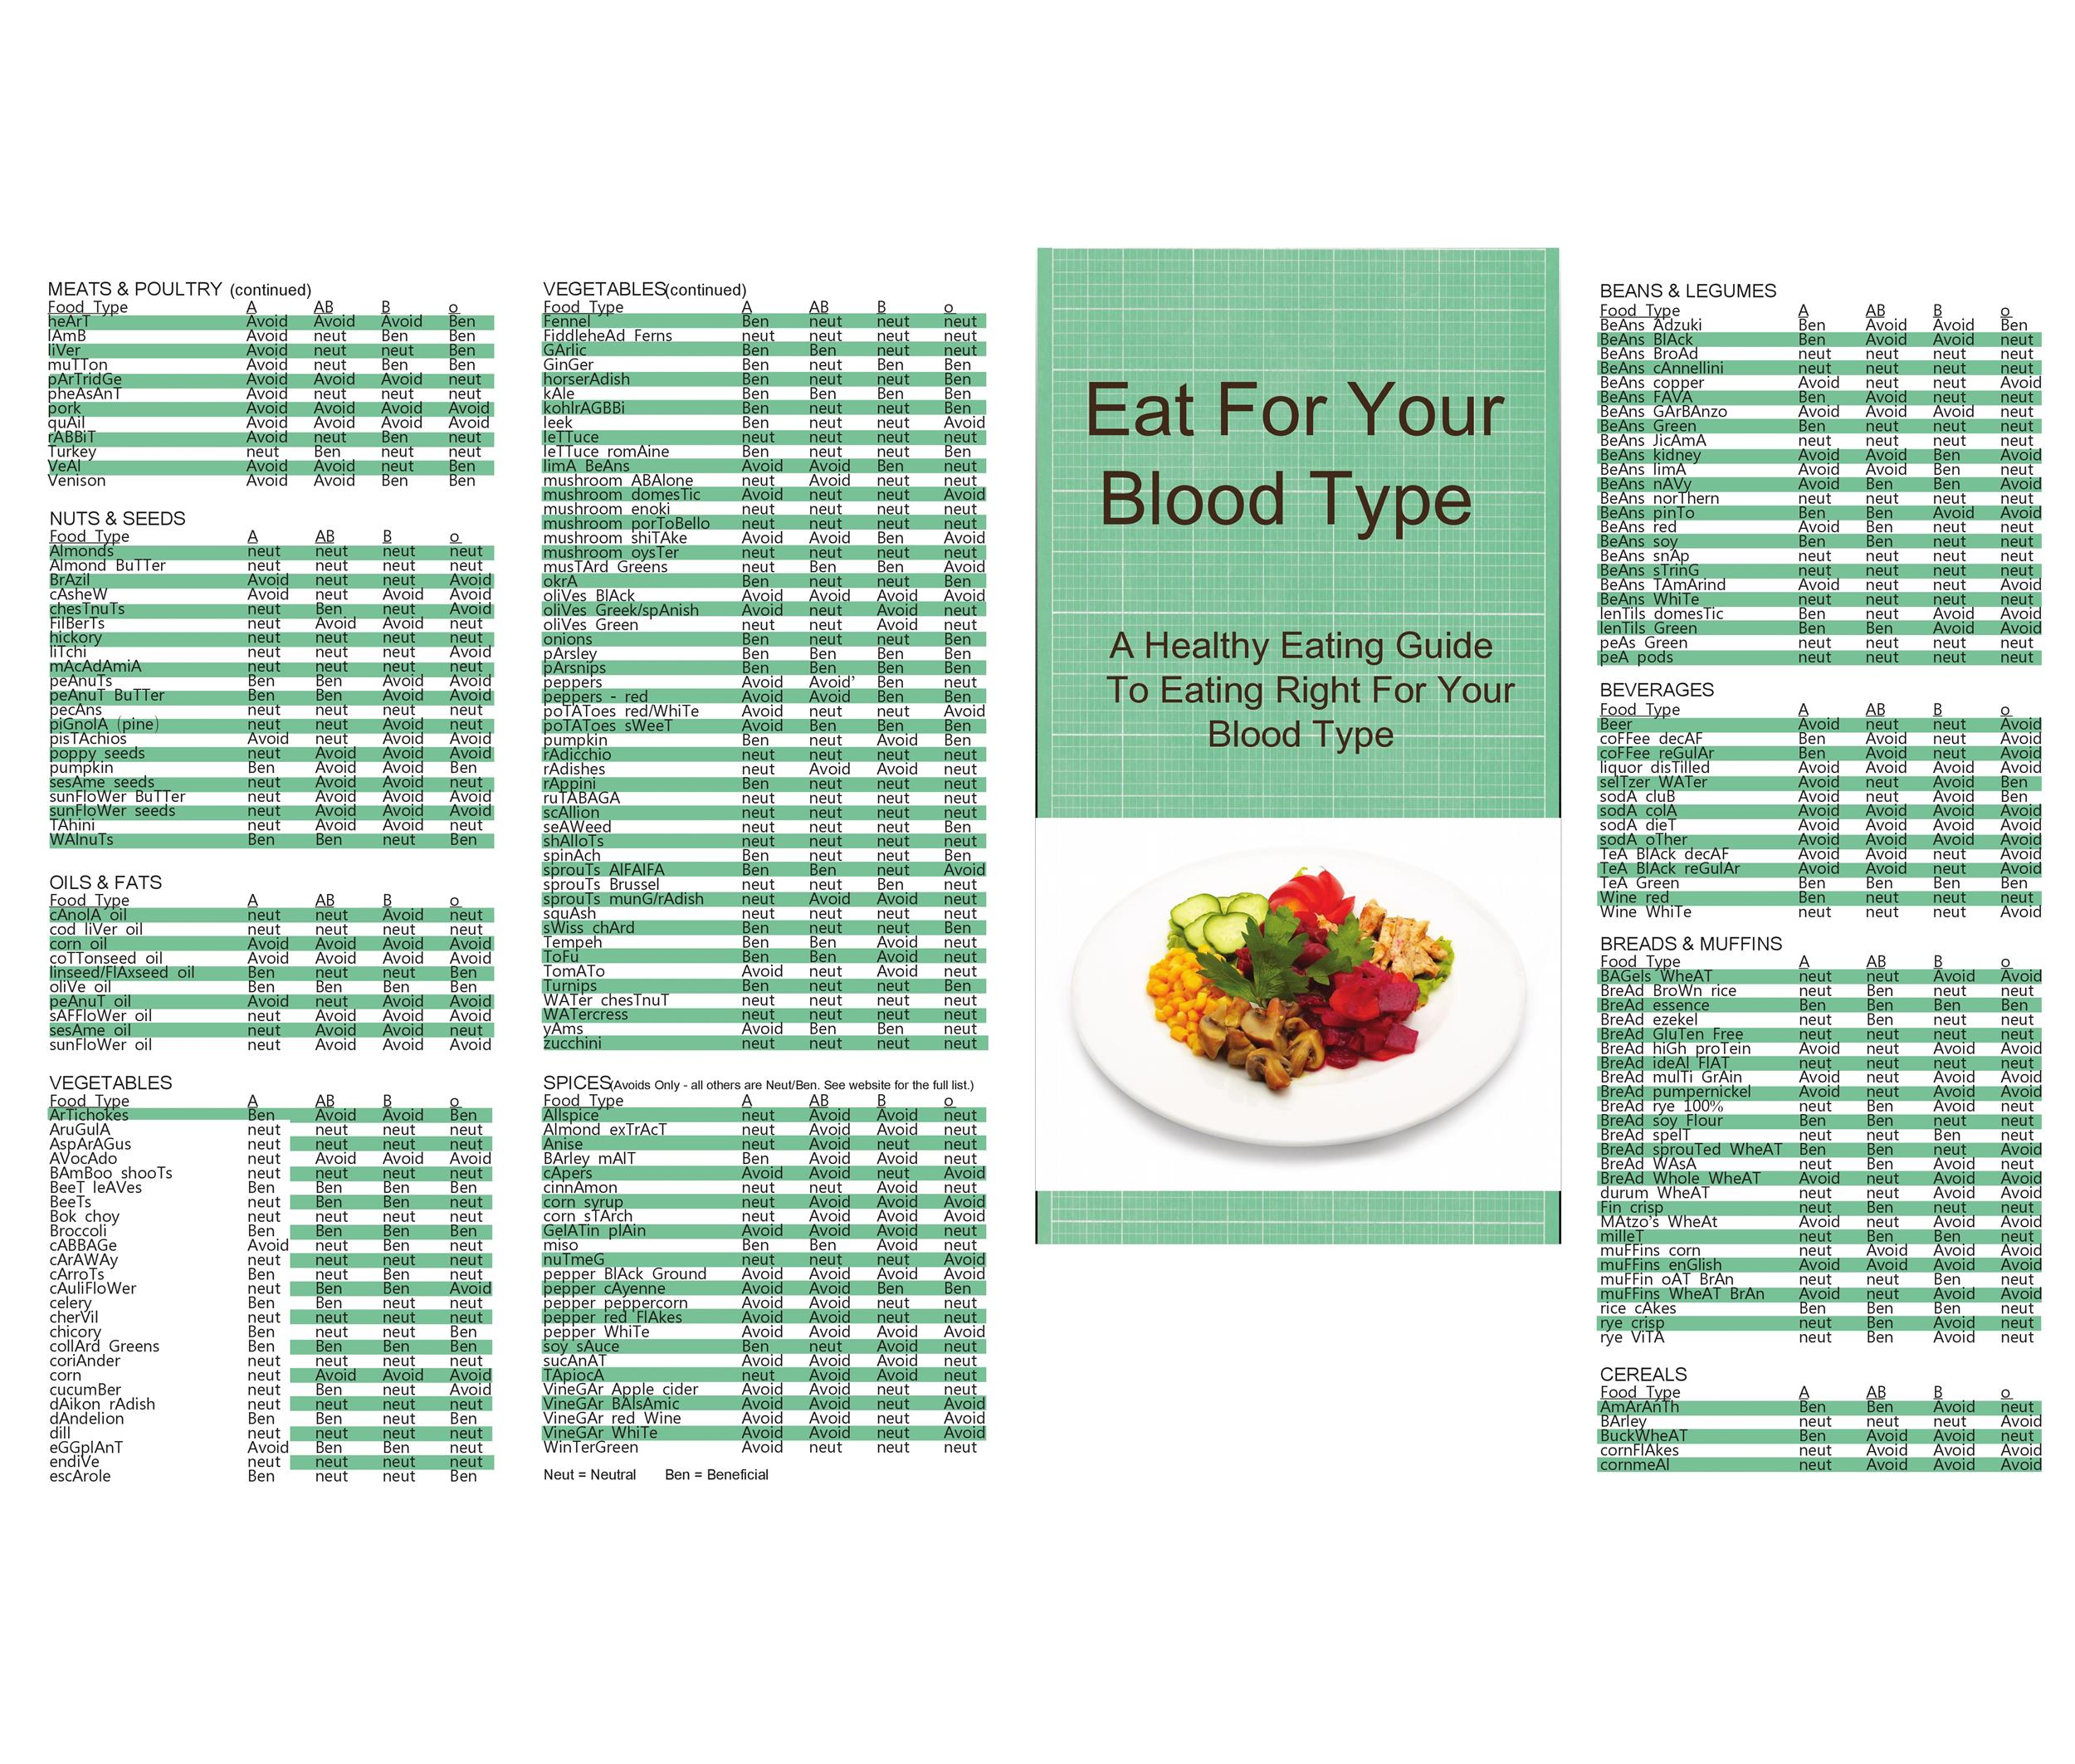 30+ Blood Type Diet Charts & Printable Tables ᐅ TemplateLab